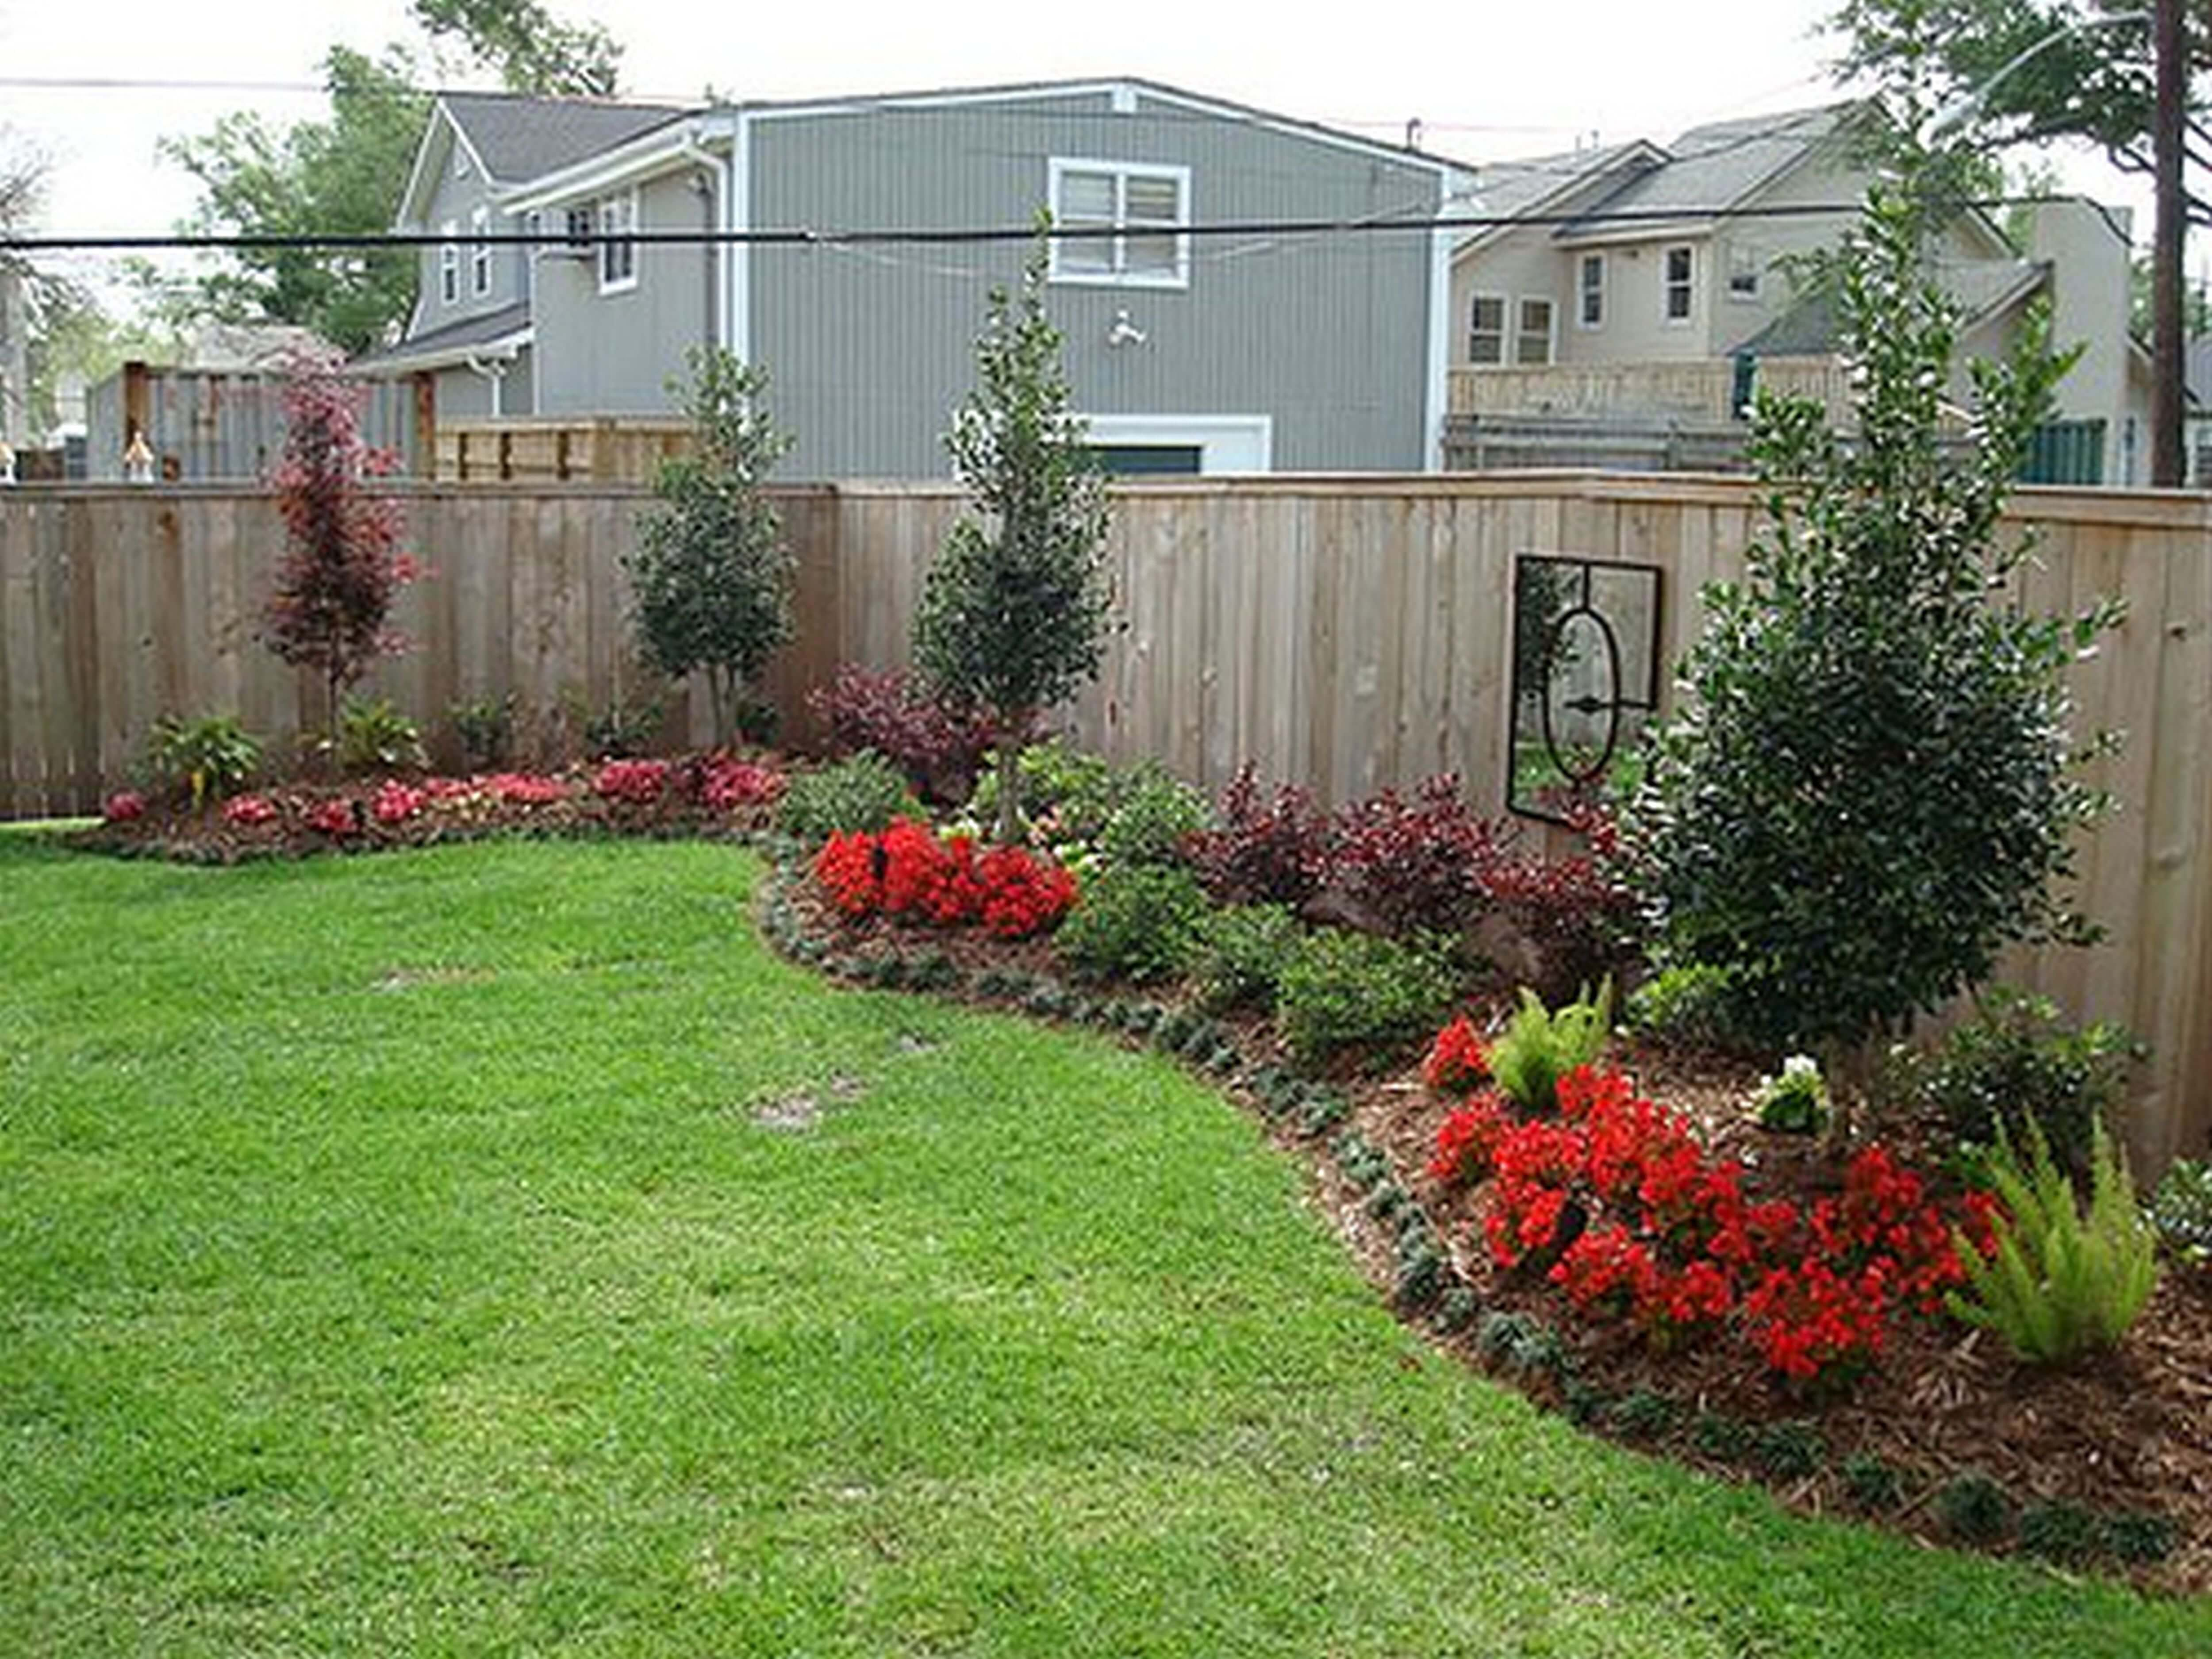 What Landscaping Ideas Simple Backyard Landscape Ideas within 10 Clever Initiatives of How to Upgrade Ideas For Landscaping Backyard